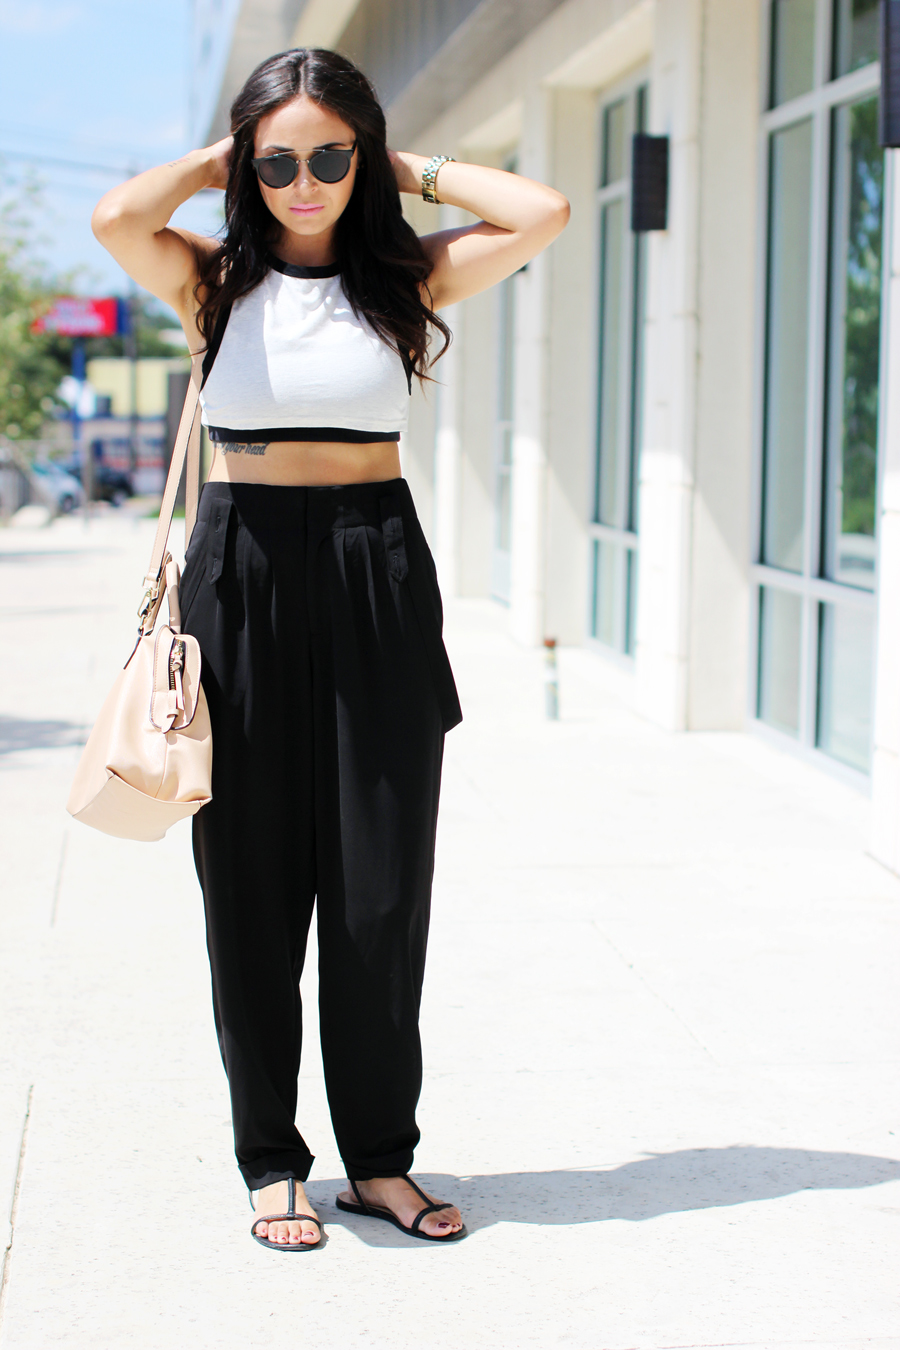 FTT-OVERALL-TROUSER-PANT-CROP-TOP-BLUSH-BAG-14